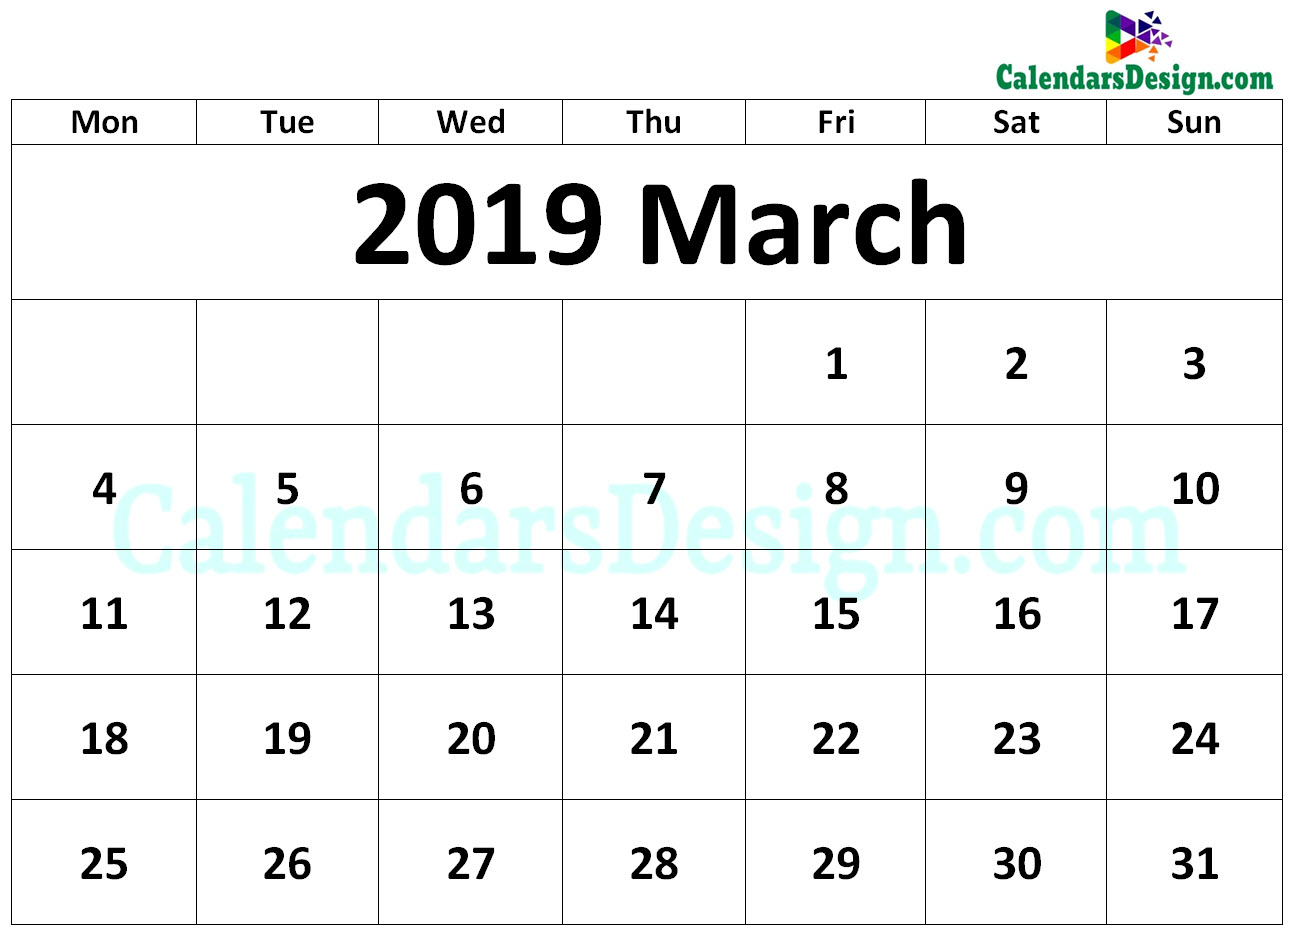 Printable Calendar for March 2019